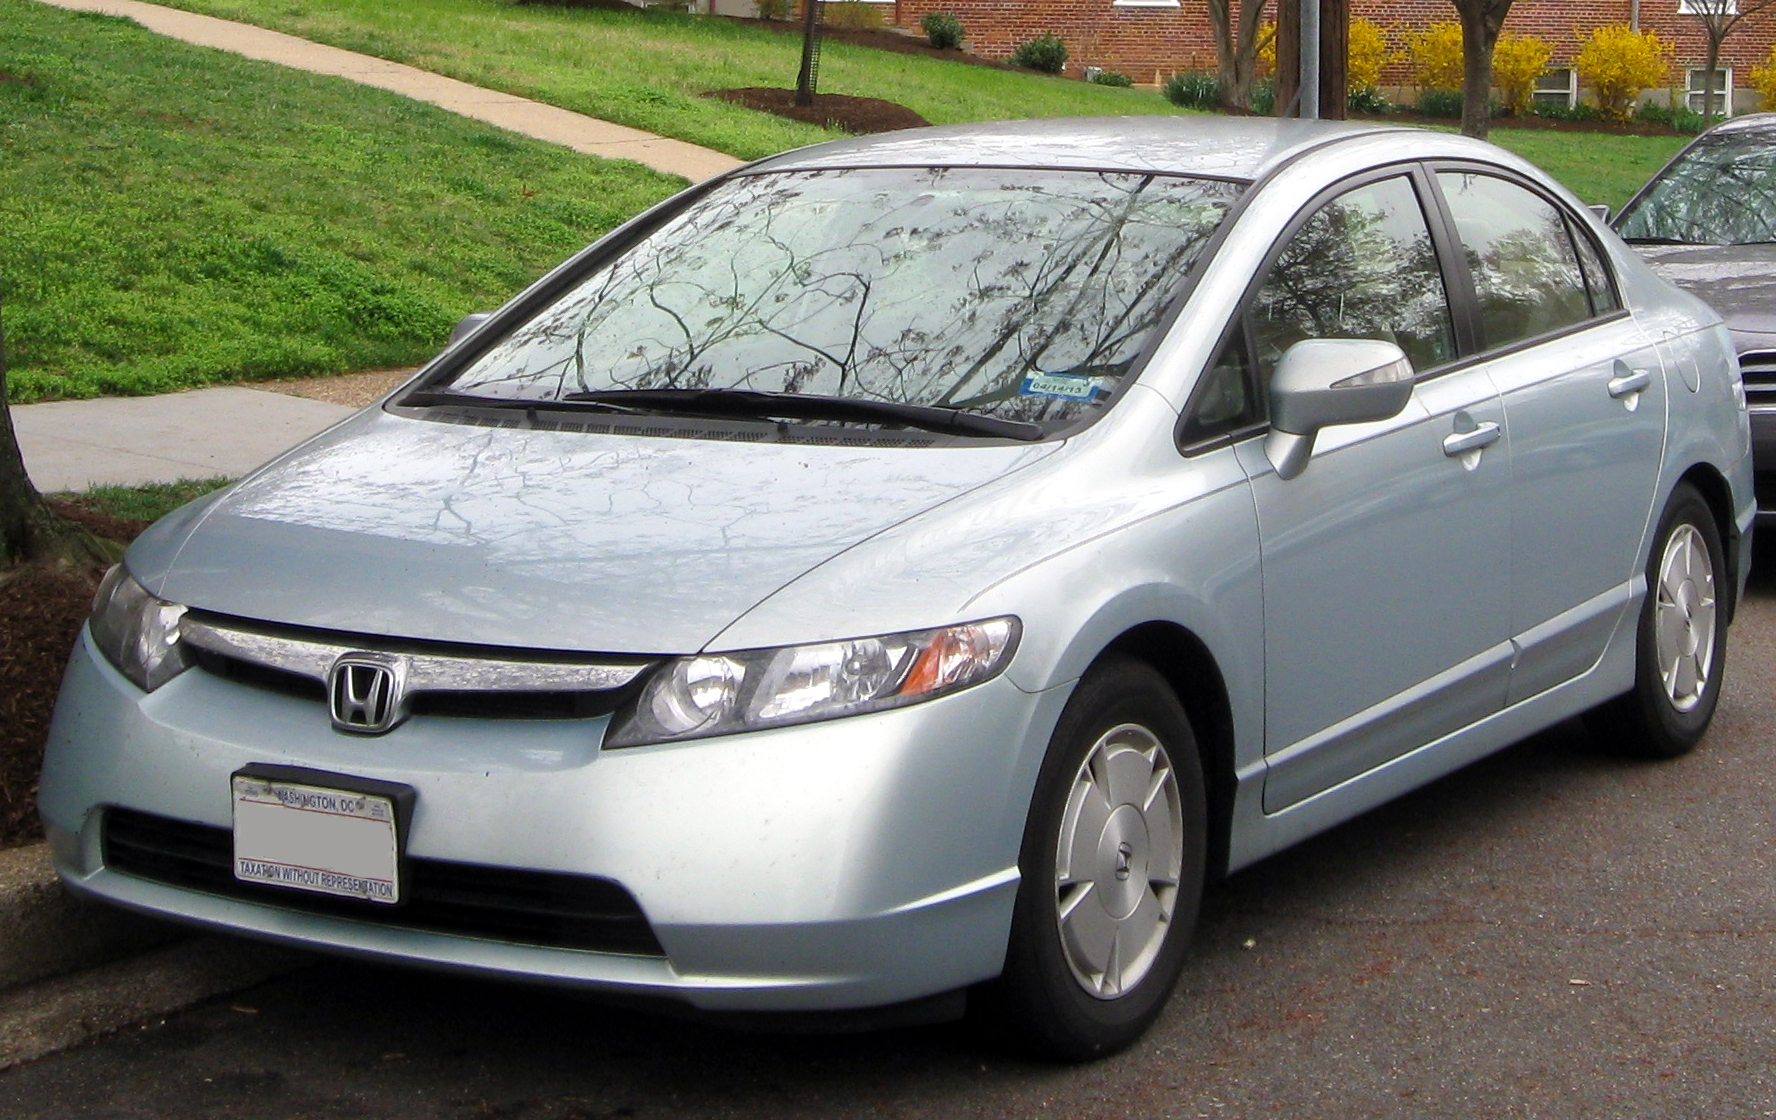 Honda Civic Used Cars San Diego